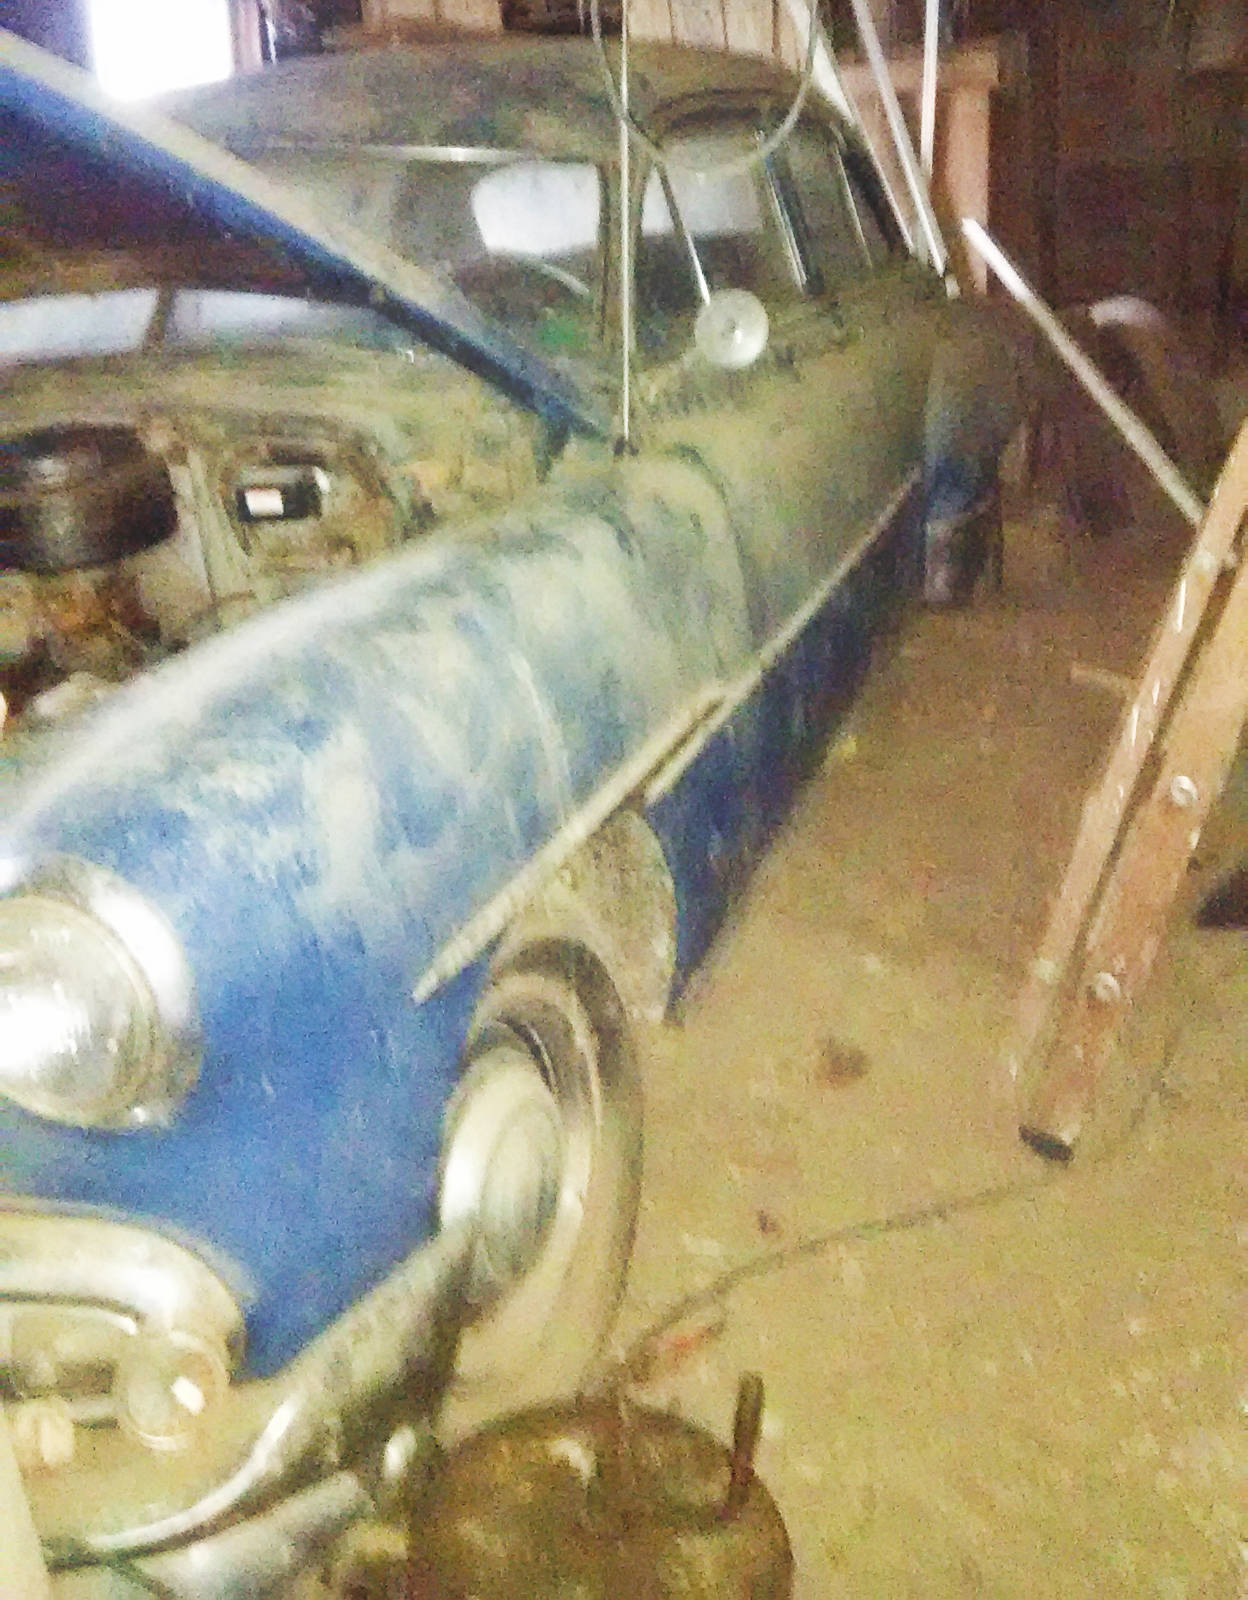 Exclusive 1951 Chevrolet 4 Door Deluxe 2 She Does Not Want The Car To Go Salvage And Turned Down A 500 Offer Allens Should Good Home It Comes With Lot Of Original